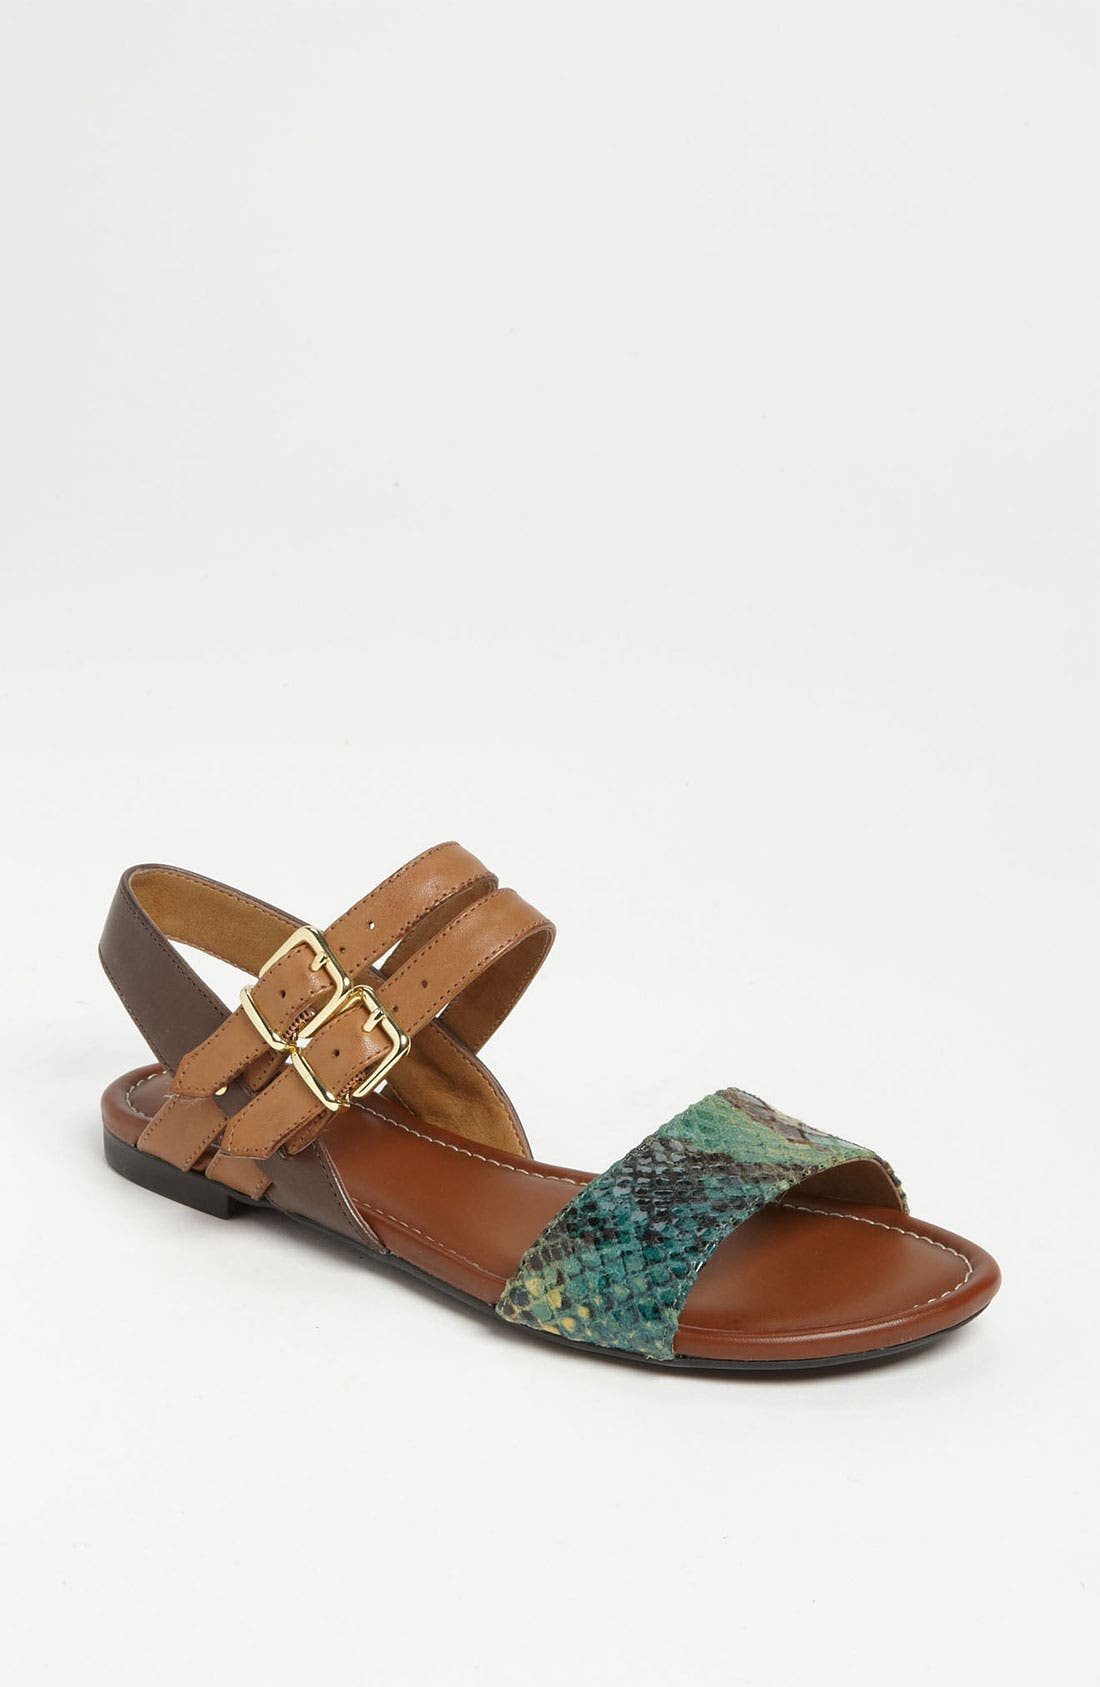 Alternate Image 1 Selected - Clarks® 'Indira Rue' Sandal